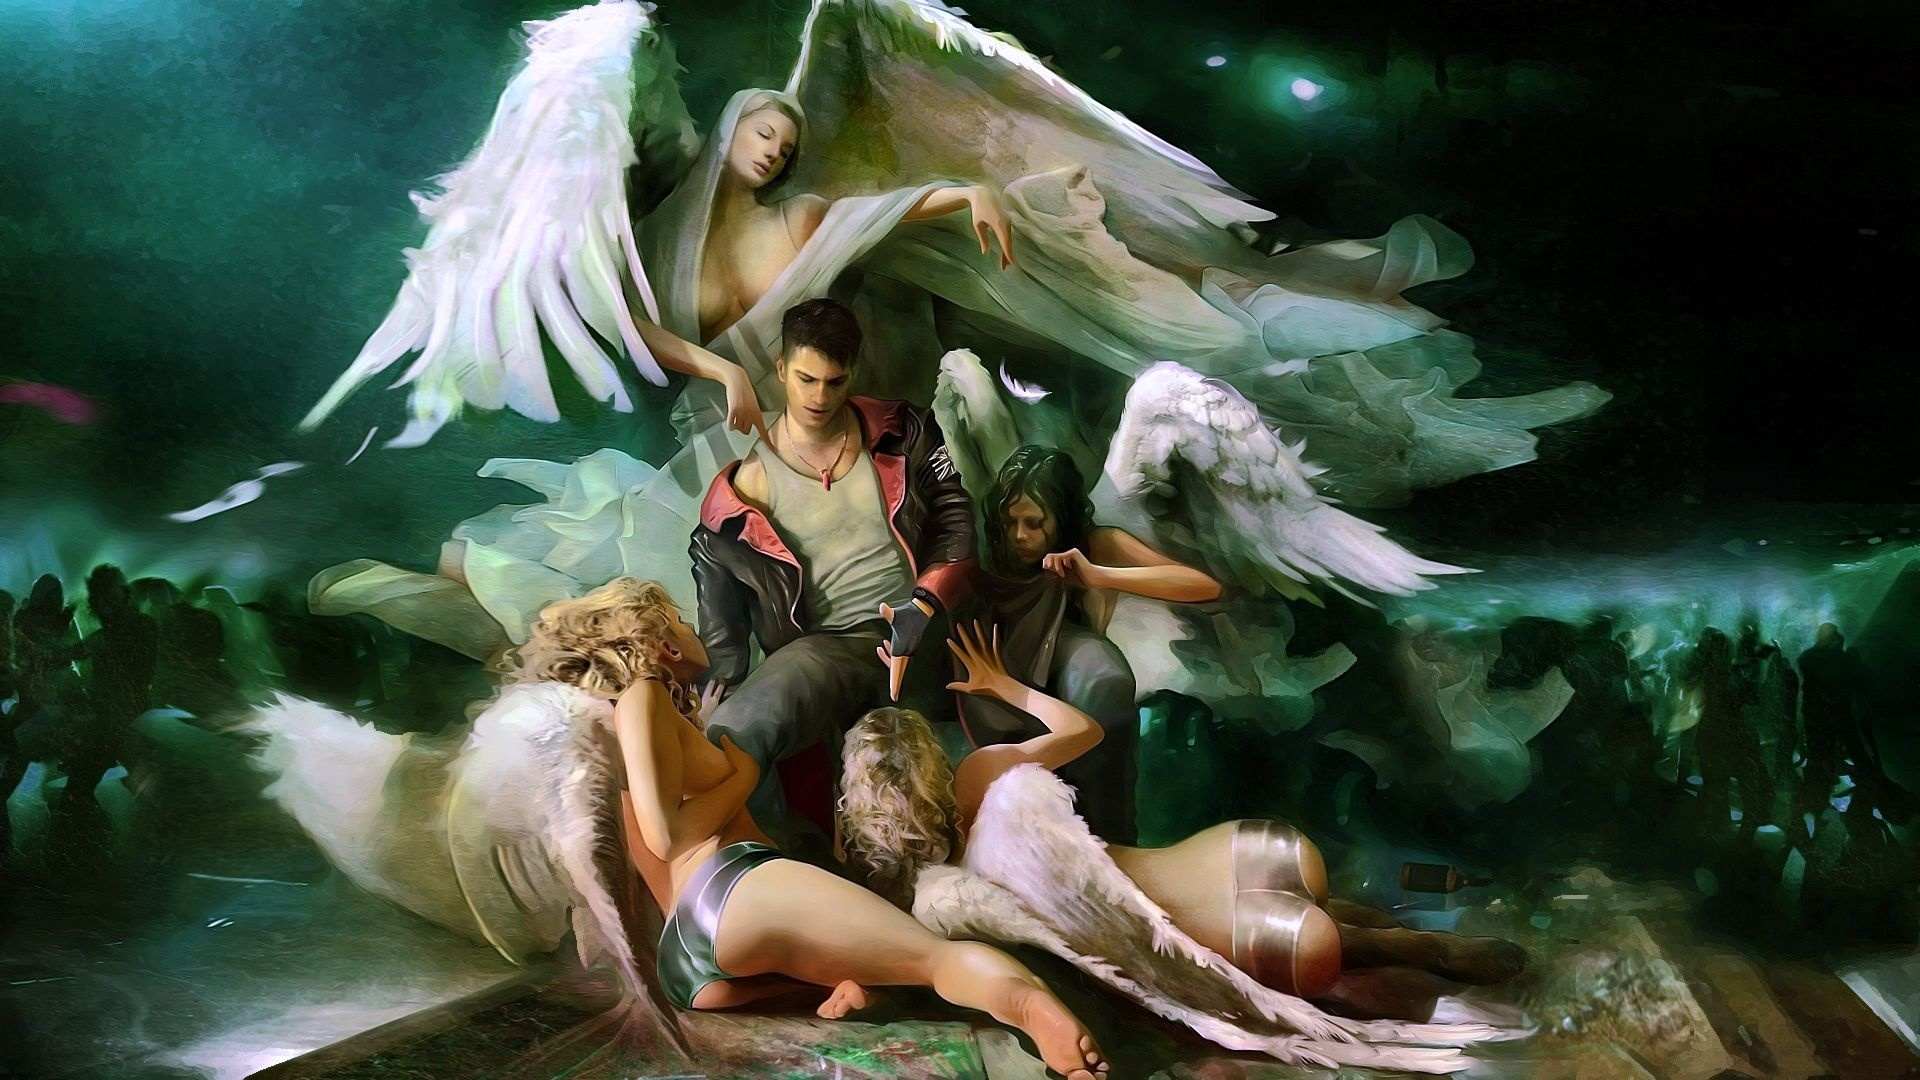 Wallpaper Devil May Cry 1920x1080 Full Hd 2k Picture Image